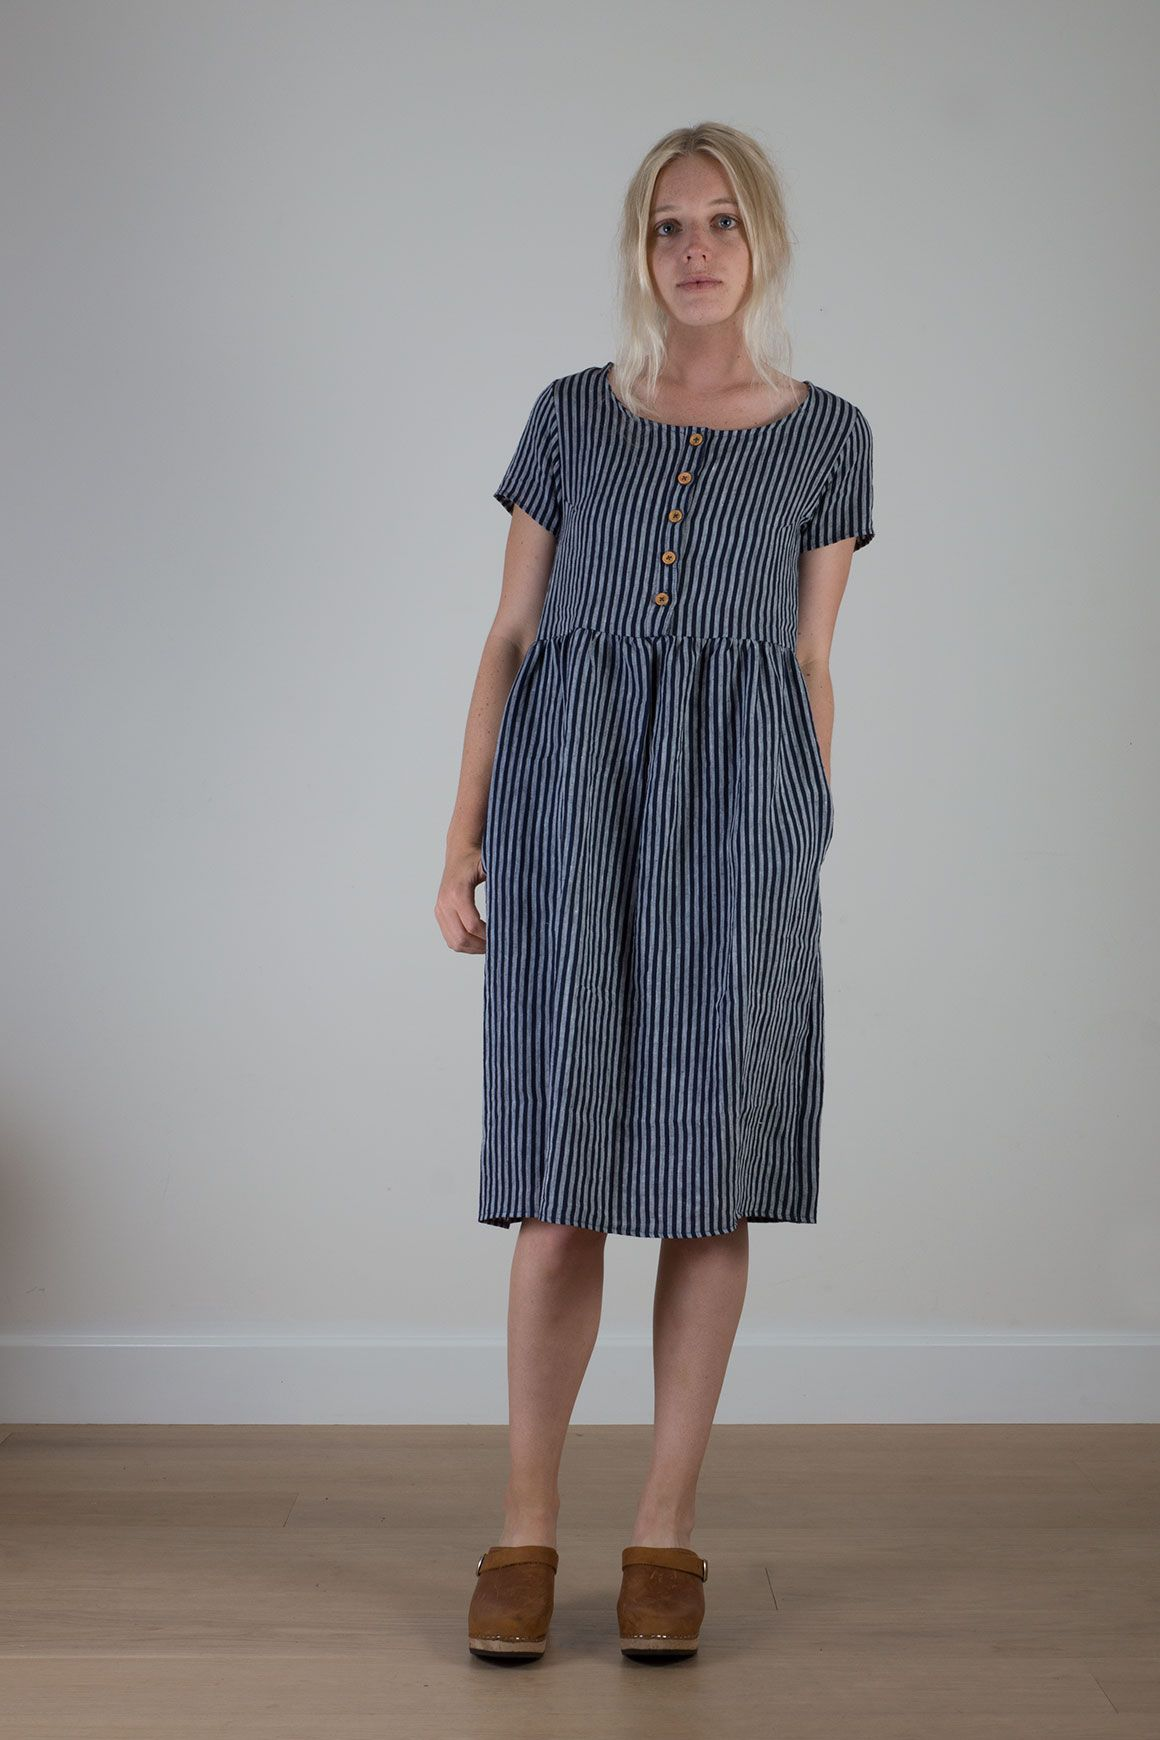 9b0b6ff438 Indigo striped linen button up dress from Pyne   Smith